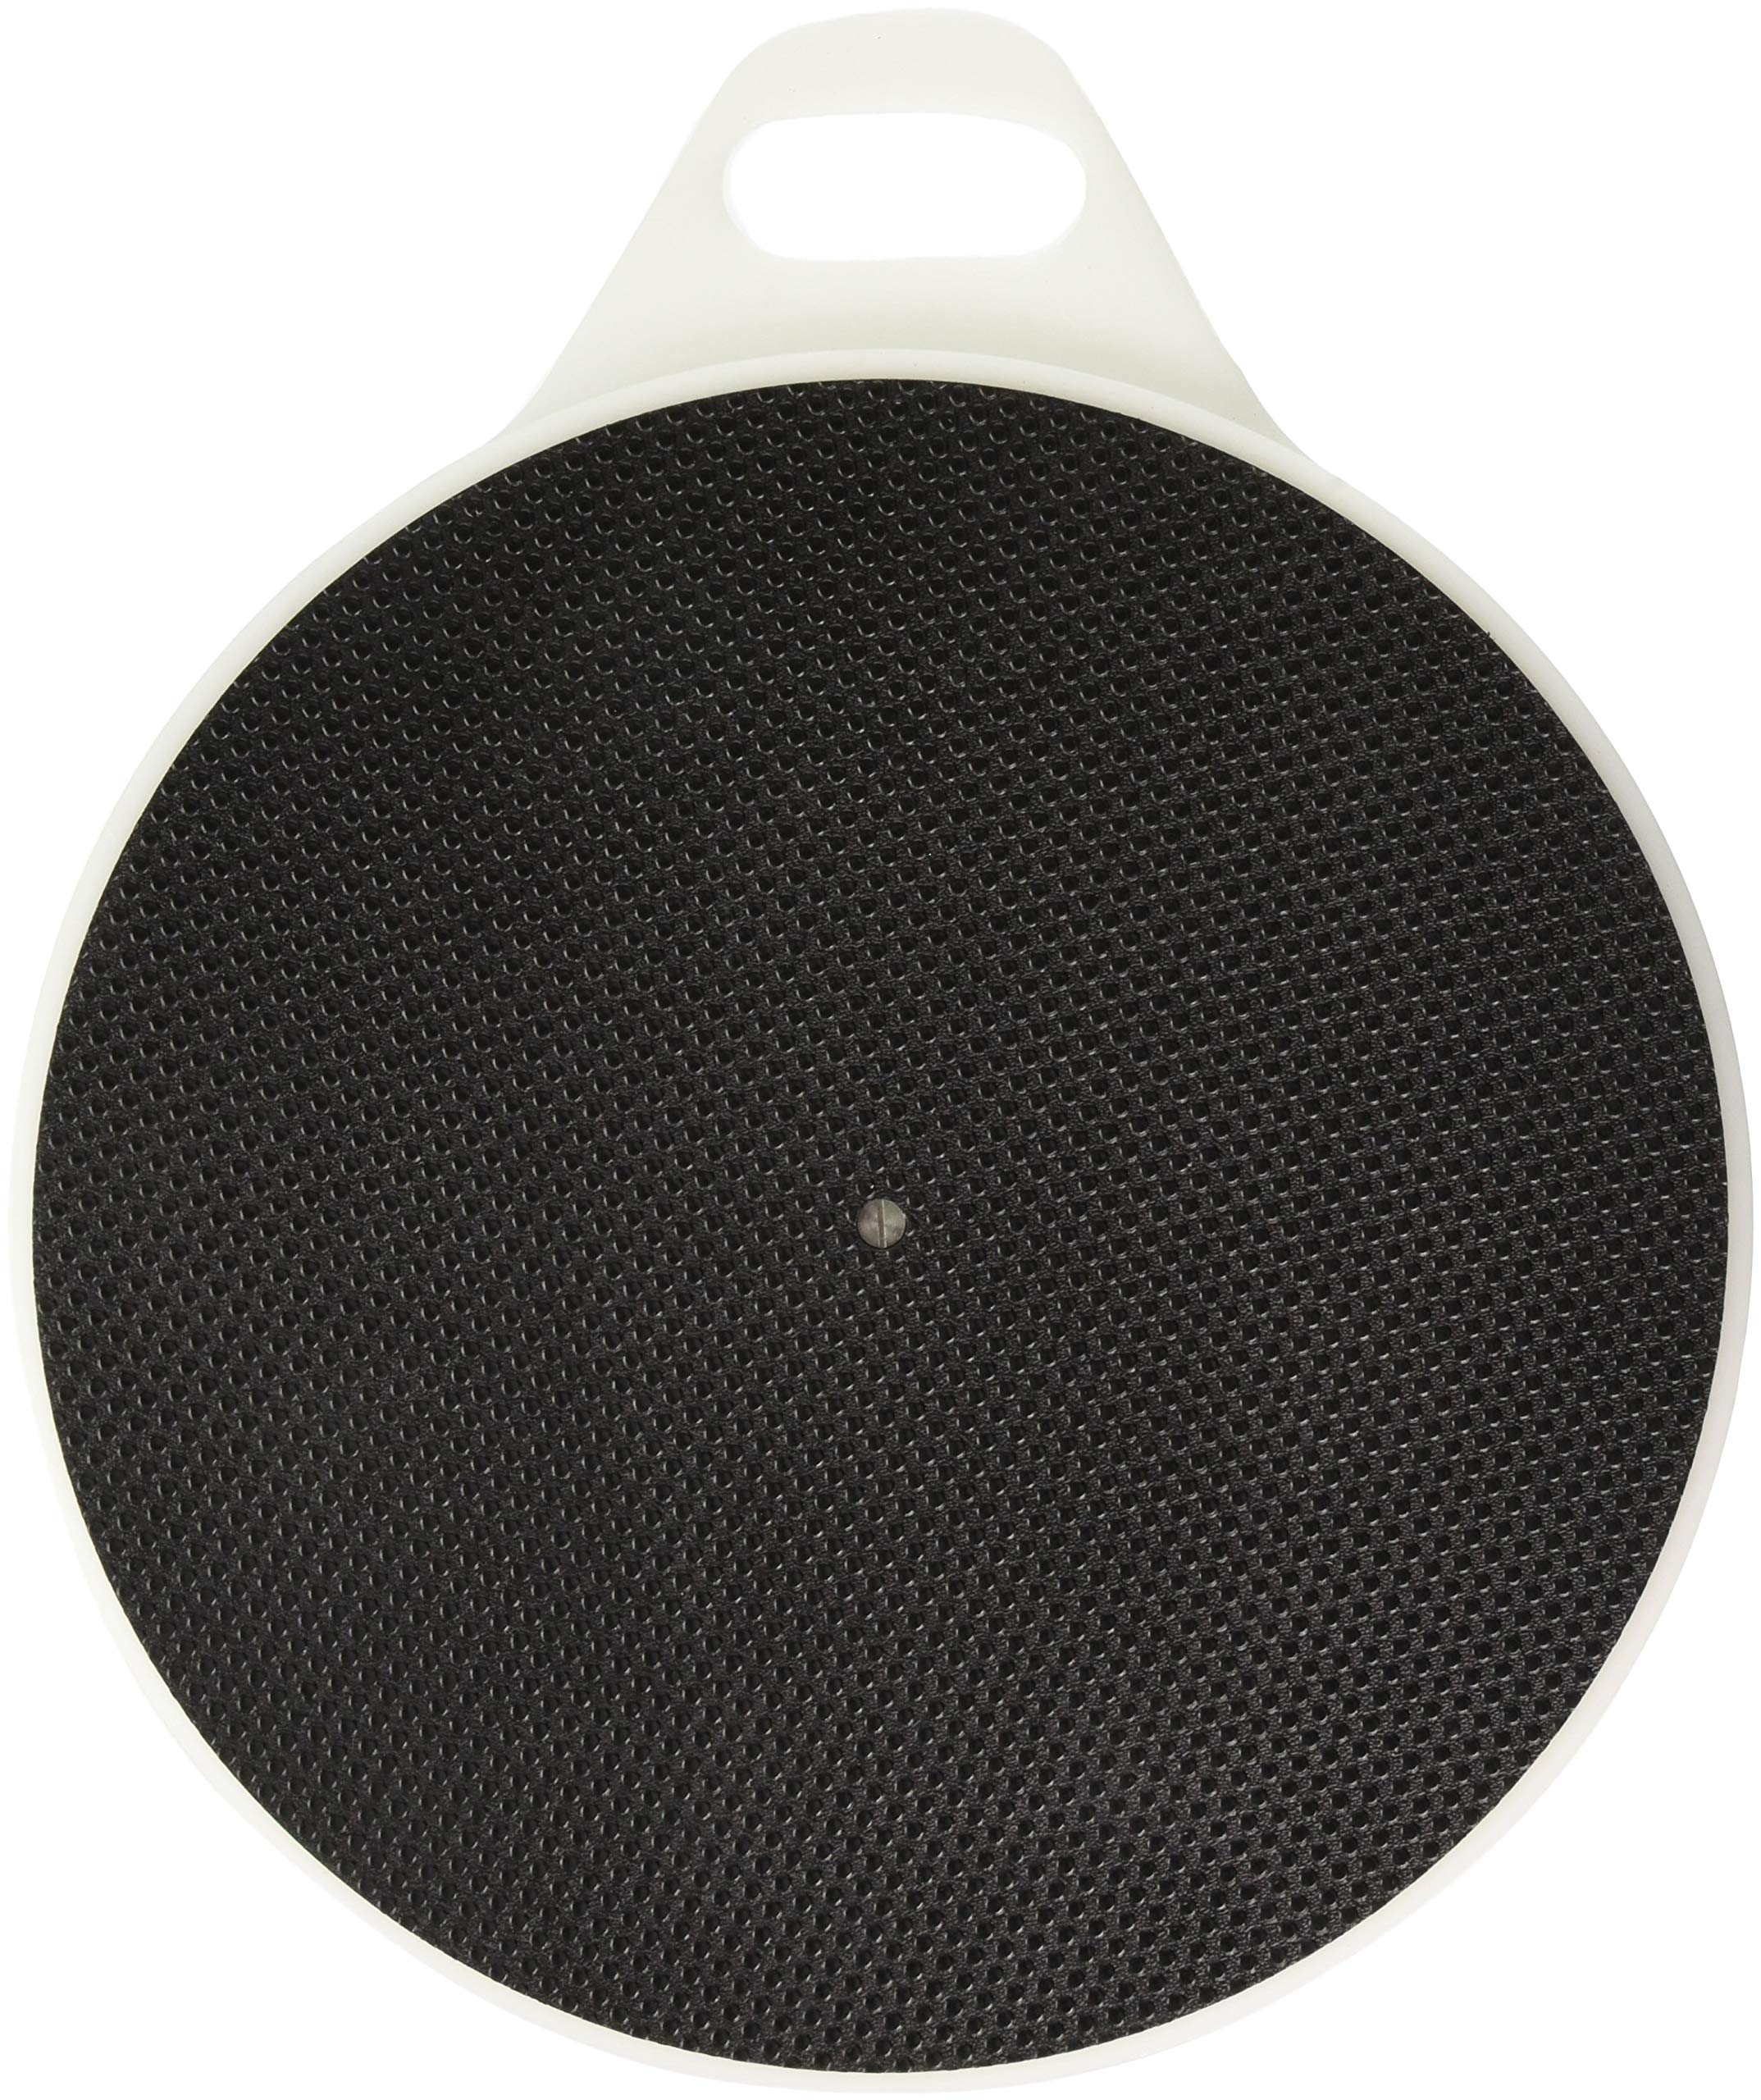 Safetysure Pivot Disc 13 inches by SafetySure